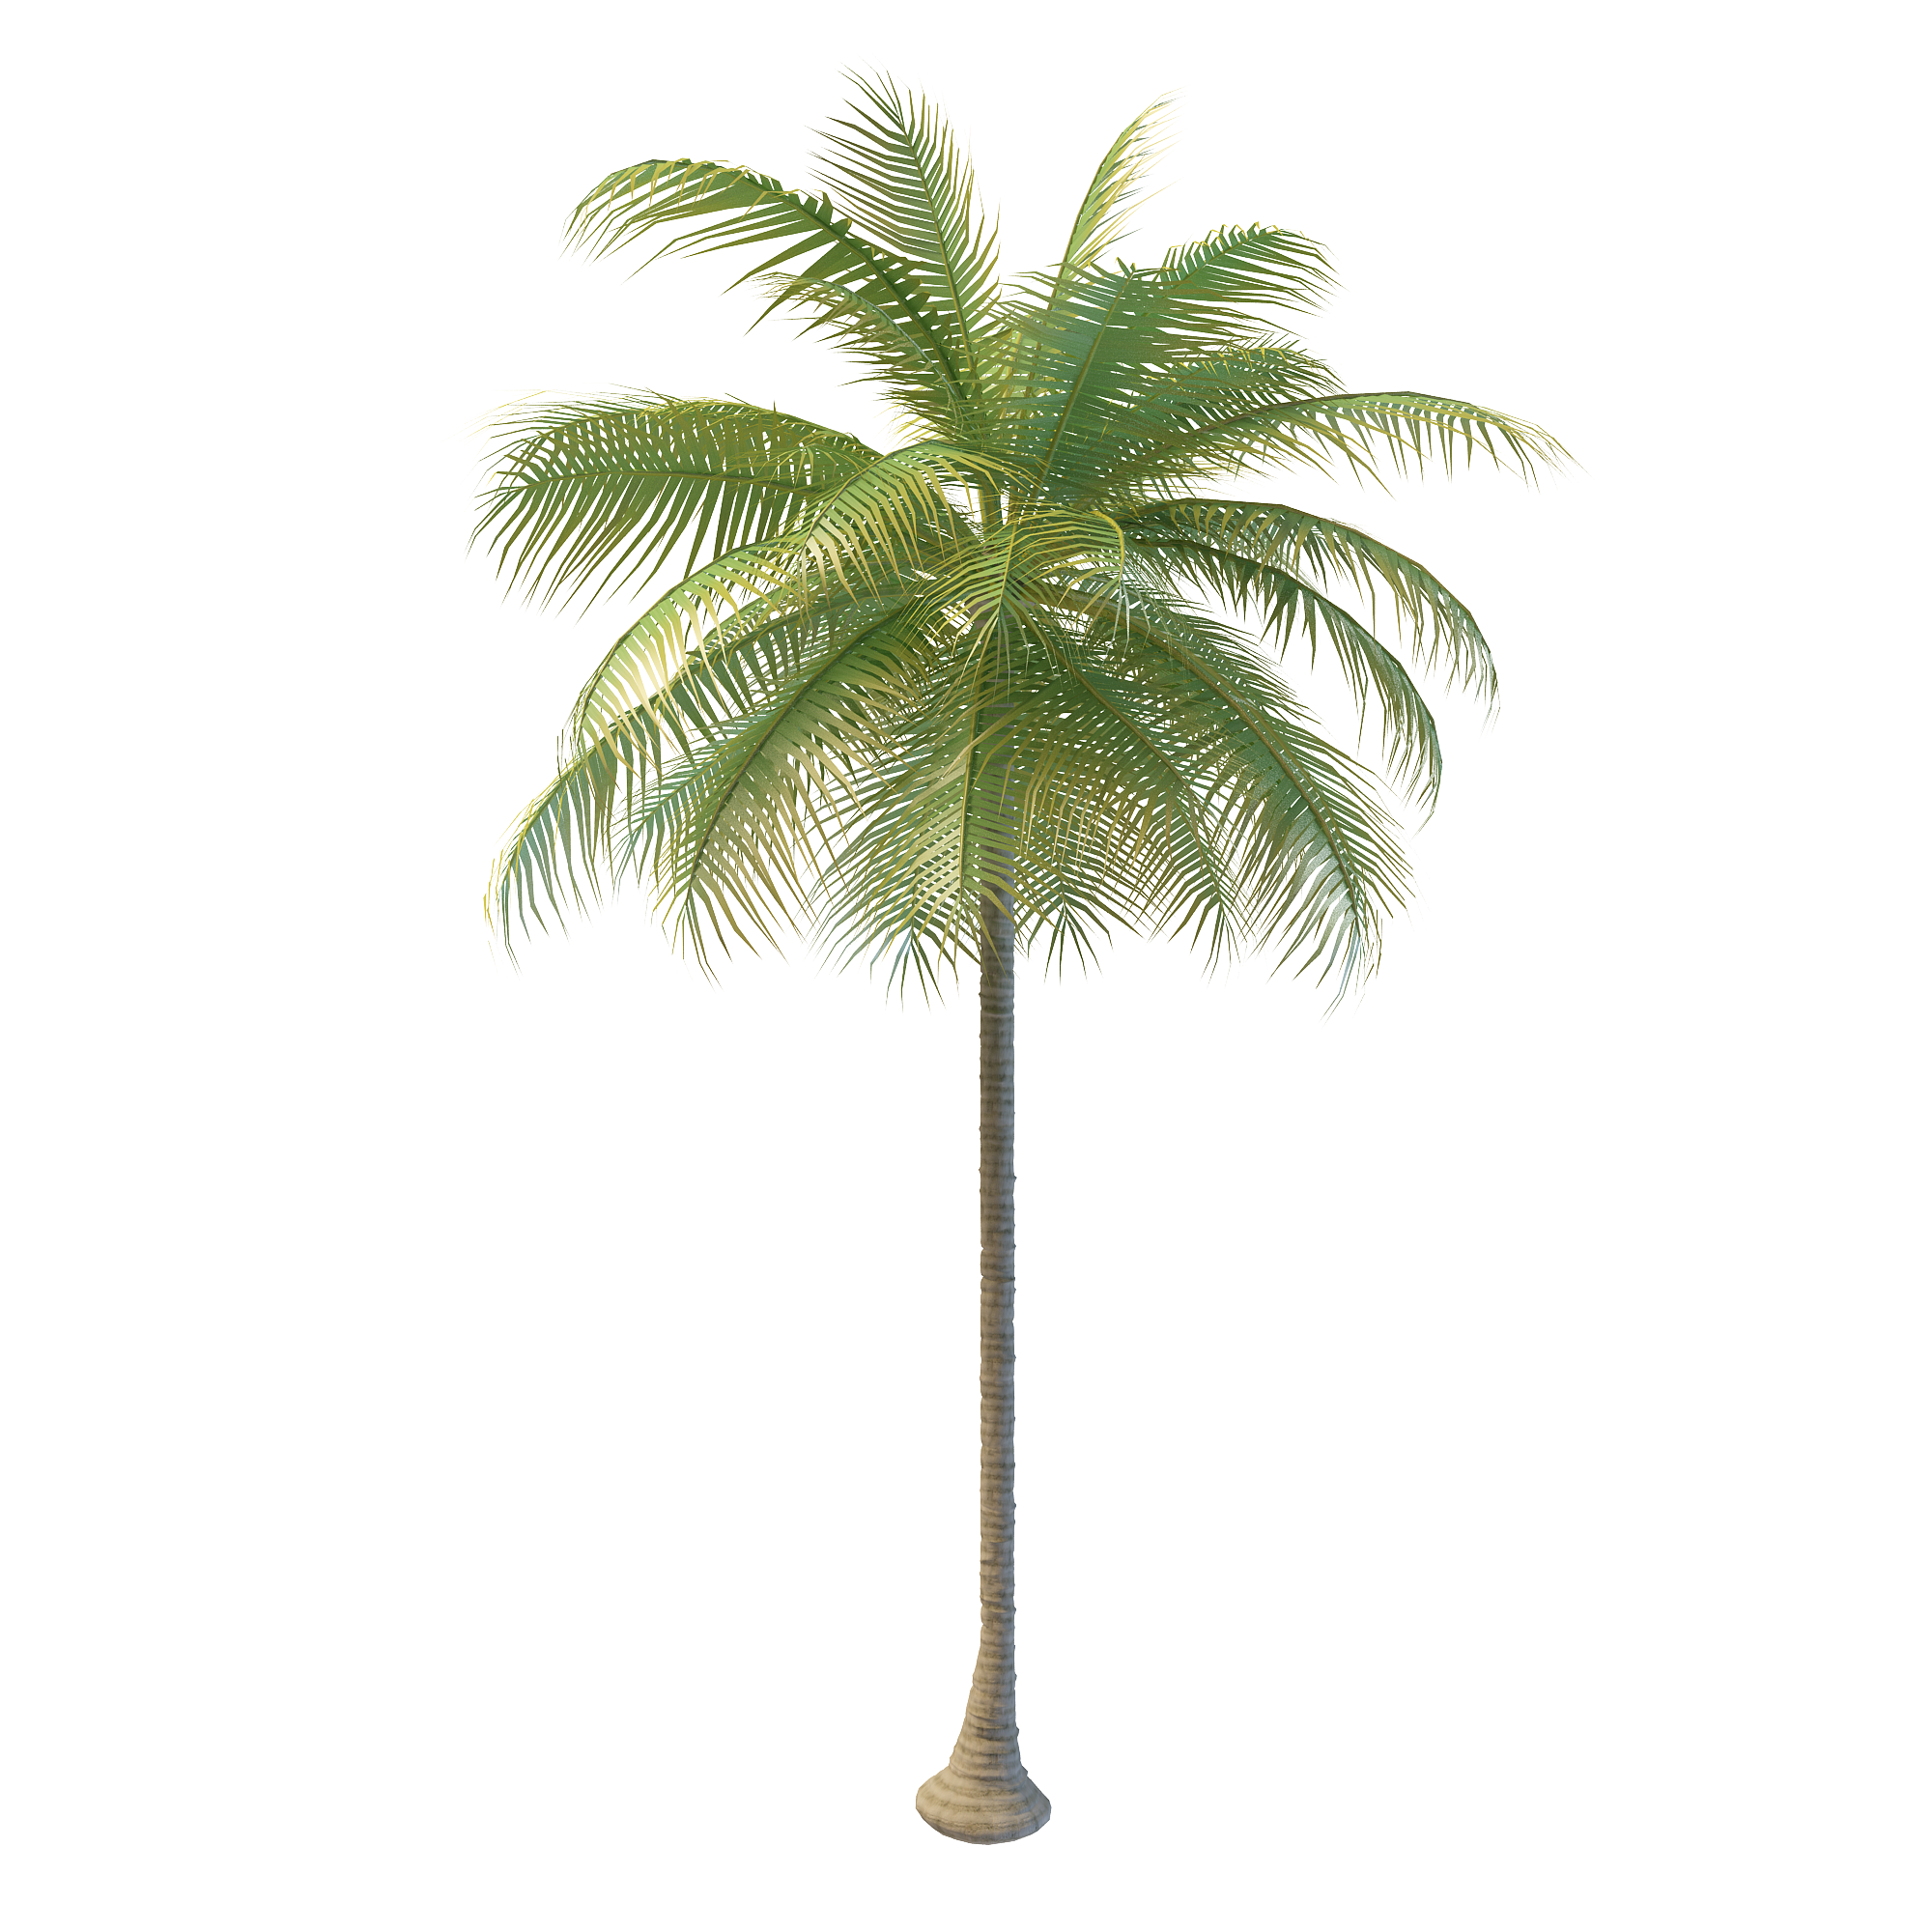 Coconut tree png images. Arecaceae water nata de